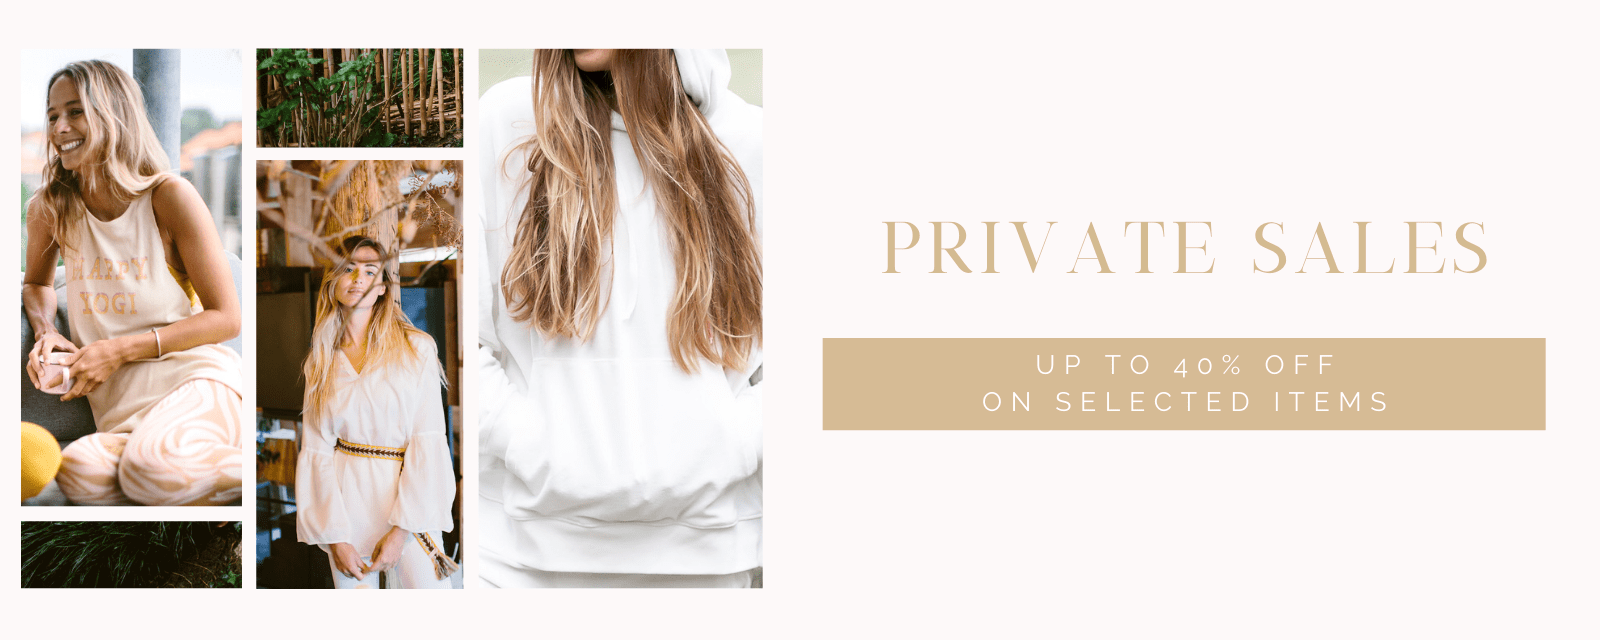 Enjoy the Yoga Searcher private sales